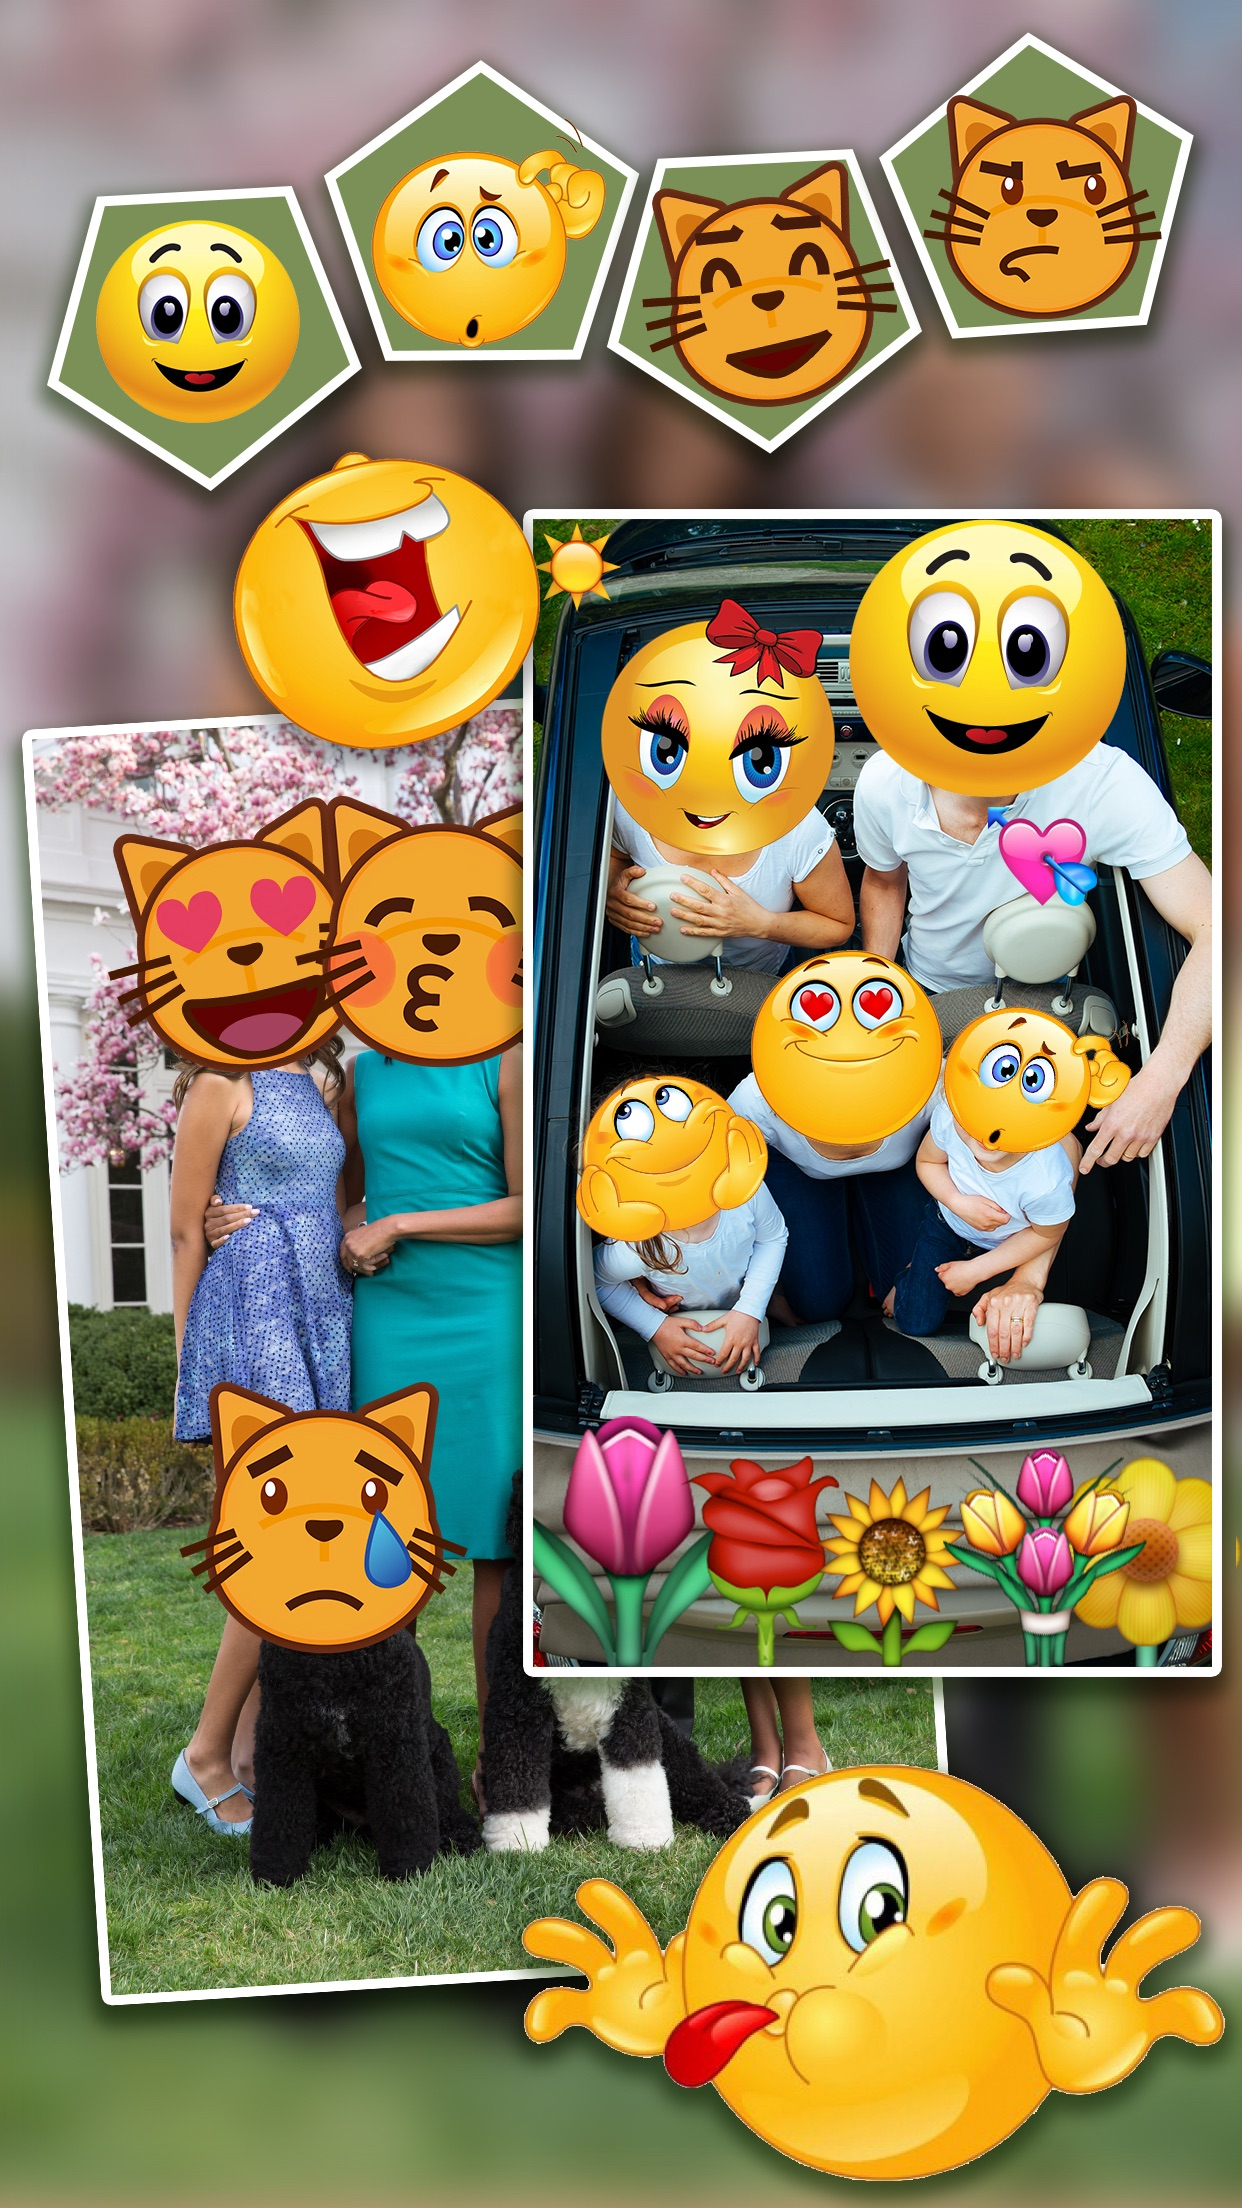 Emoji.s Photo Editor - Add Funny Cool Emoticon Sticker.s & Smiley Face.s to Your Picture Screenshot